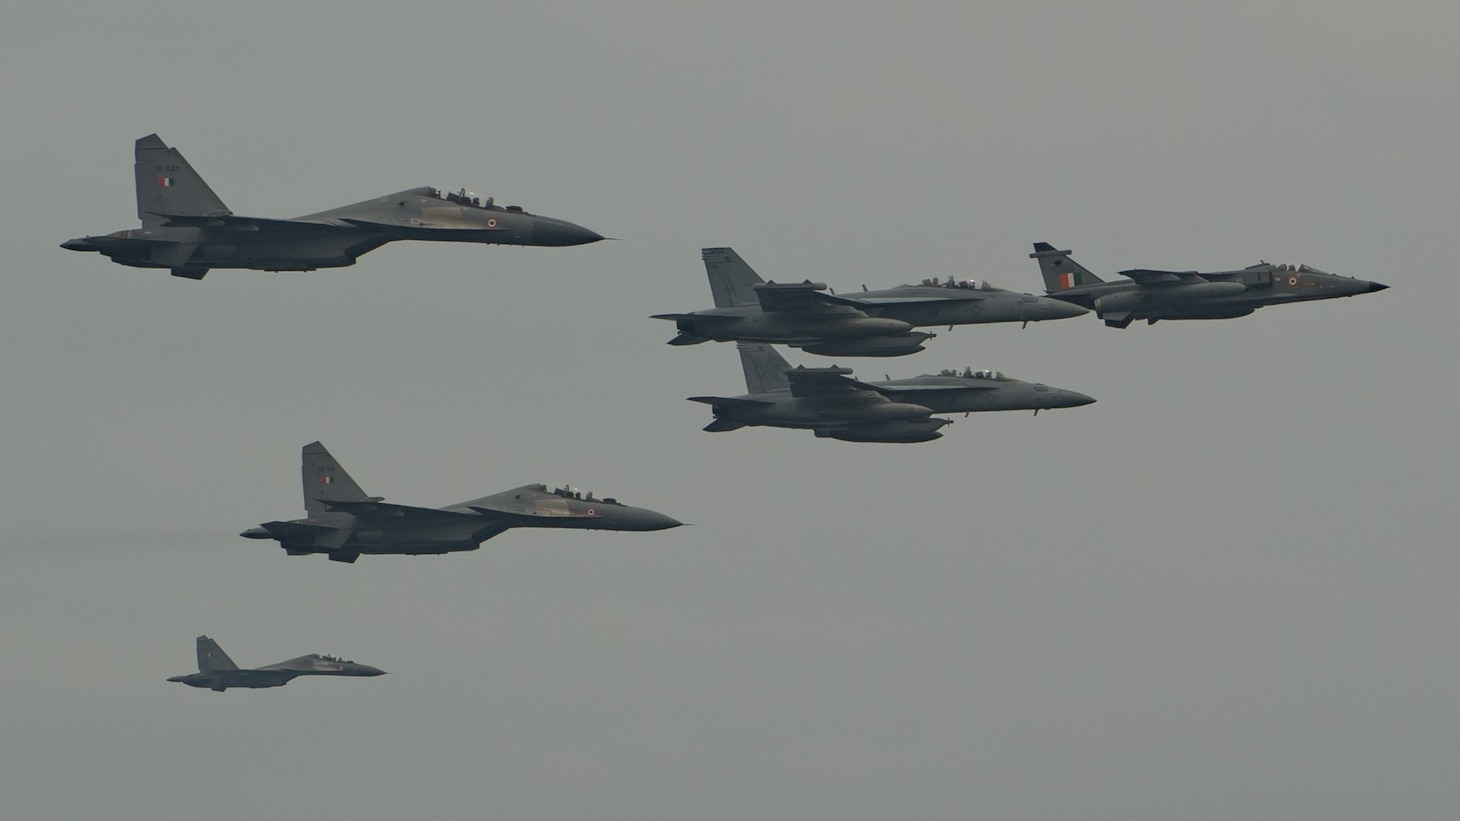 "INDIAN OCEAN (March 28, 2021) – Two EA-18G Growlers, assigned to the ""Gray Wolves"" of Electronic Attack Squadron (VAQ) 142, fly in formation with an Indian Air Force Jaguar and two Su-30MKIs over the aircraft carrier USS Theodore Roosevelt (CVN 71) March 28, 2021. The Theodore Roosevelt Carrier Strike Group is on a scheduled deployment to the U.S. 7th Fleet area of operations. As the U.S. Navy's largest forward-deployed fleet, 7th Fleet routinely operates and interacts with 35 maritime nations while conducting missions to preserve and protect a free and open Indo-Pacific Region. (U.S. Navy photo by Mass Communication Specialist 2nd Class Zachary Wheeler)"